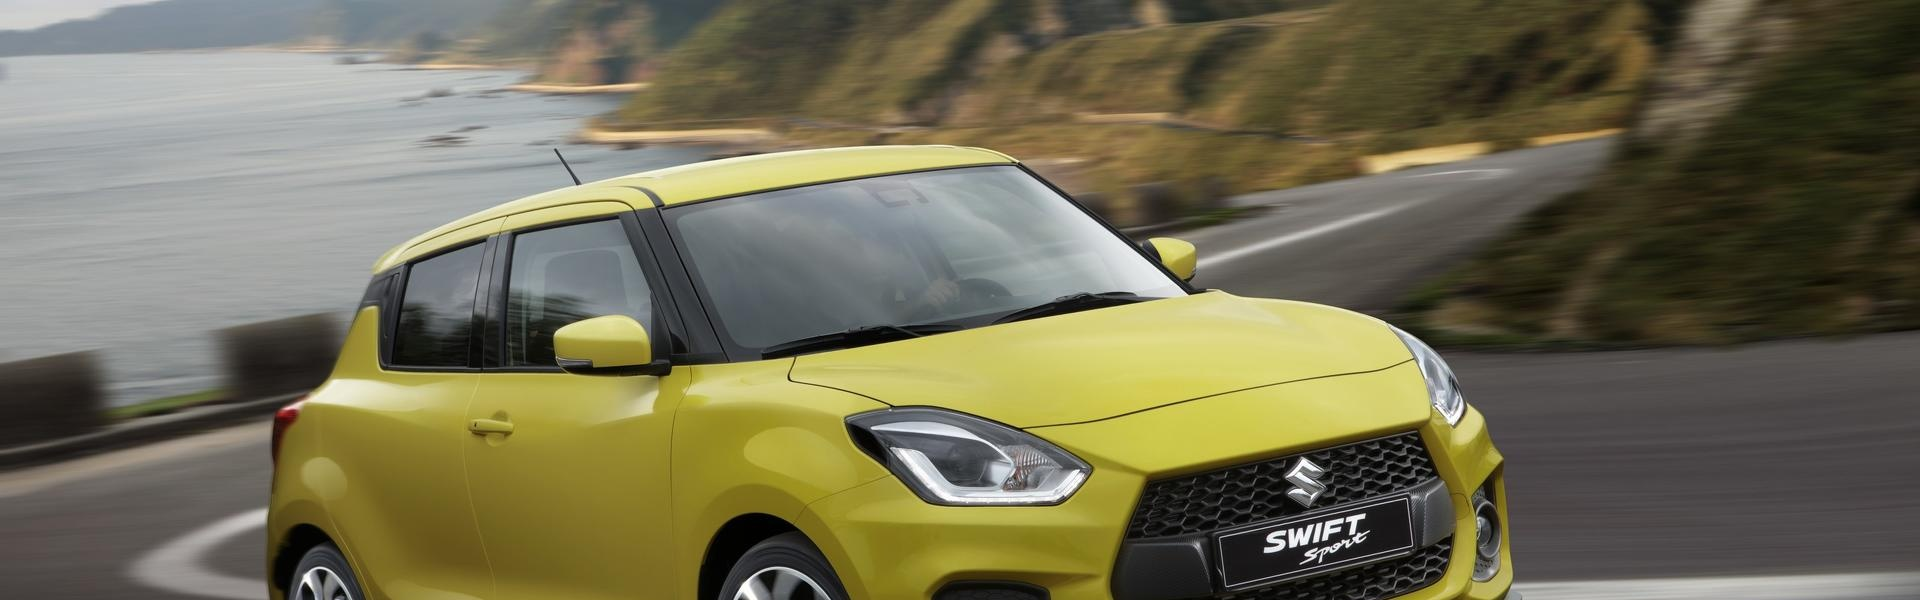 2018-suzuki-swift-sport (1).jpg